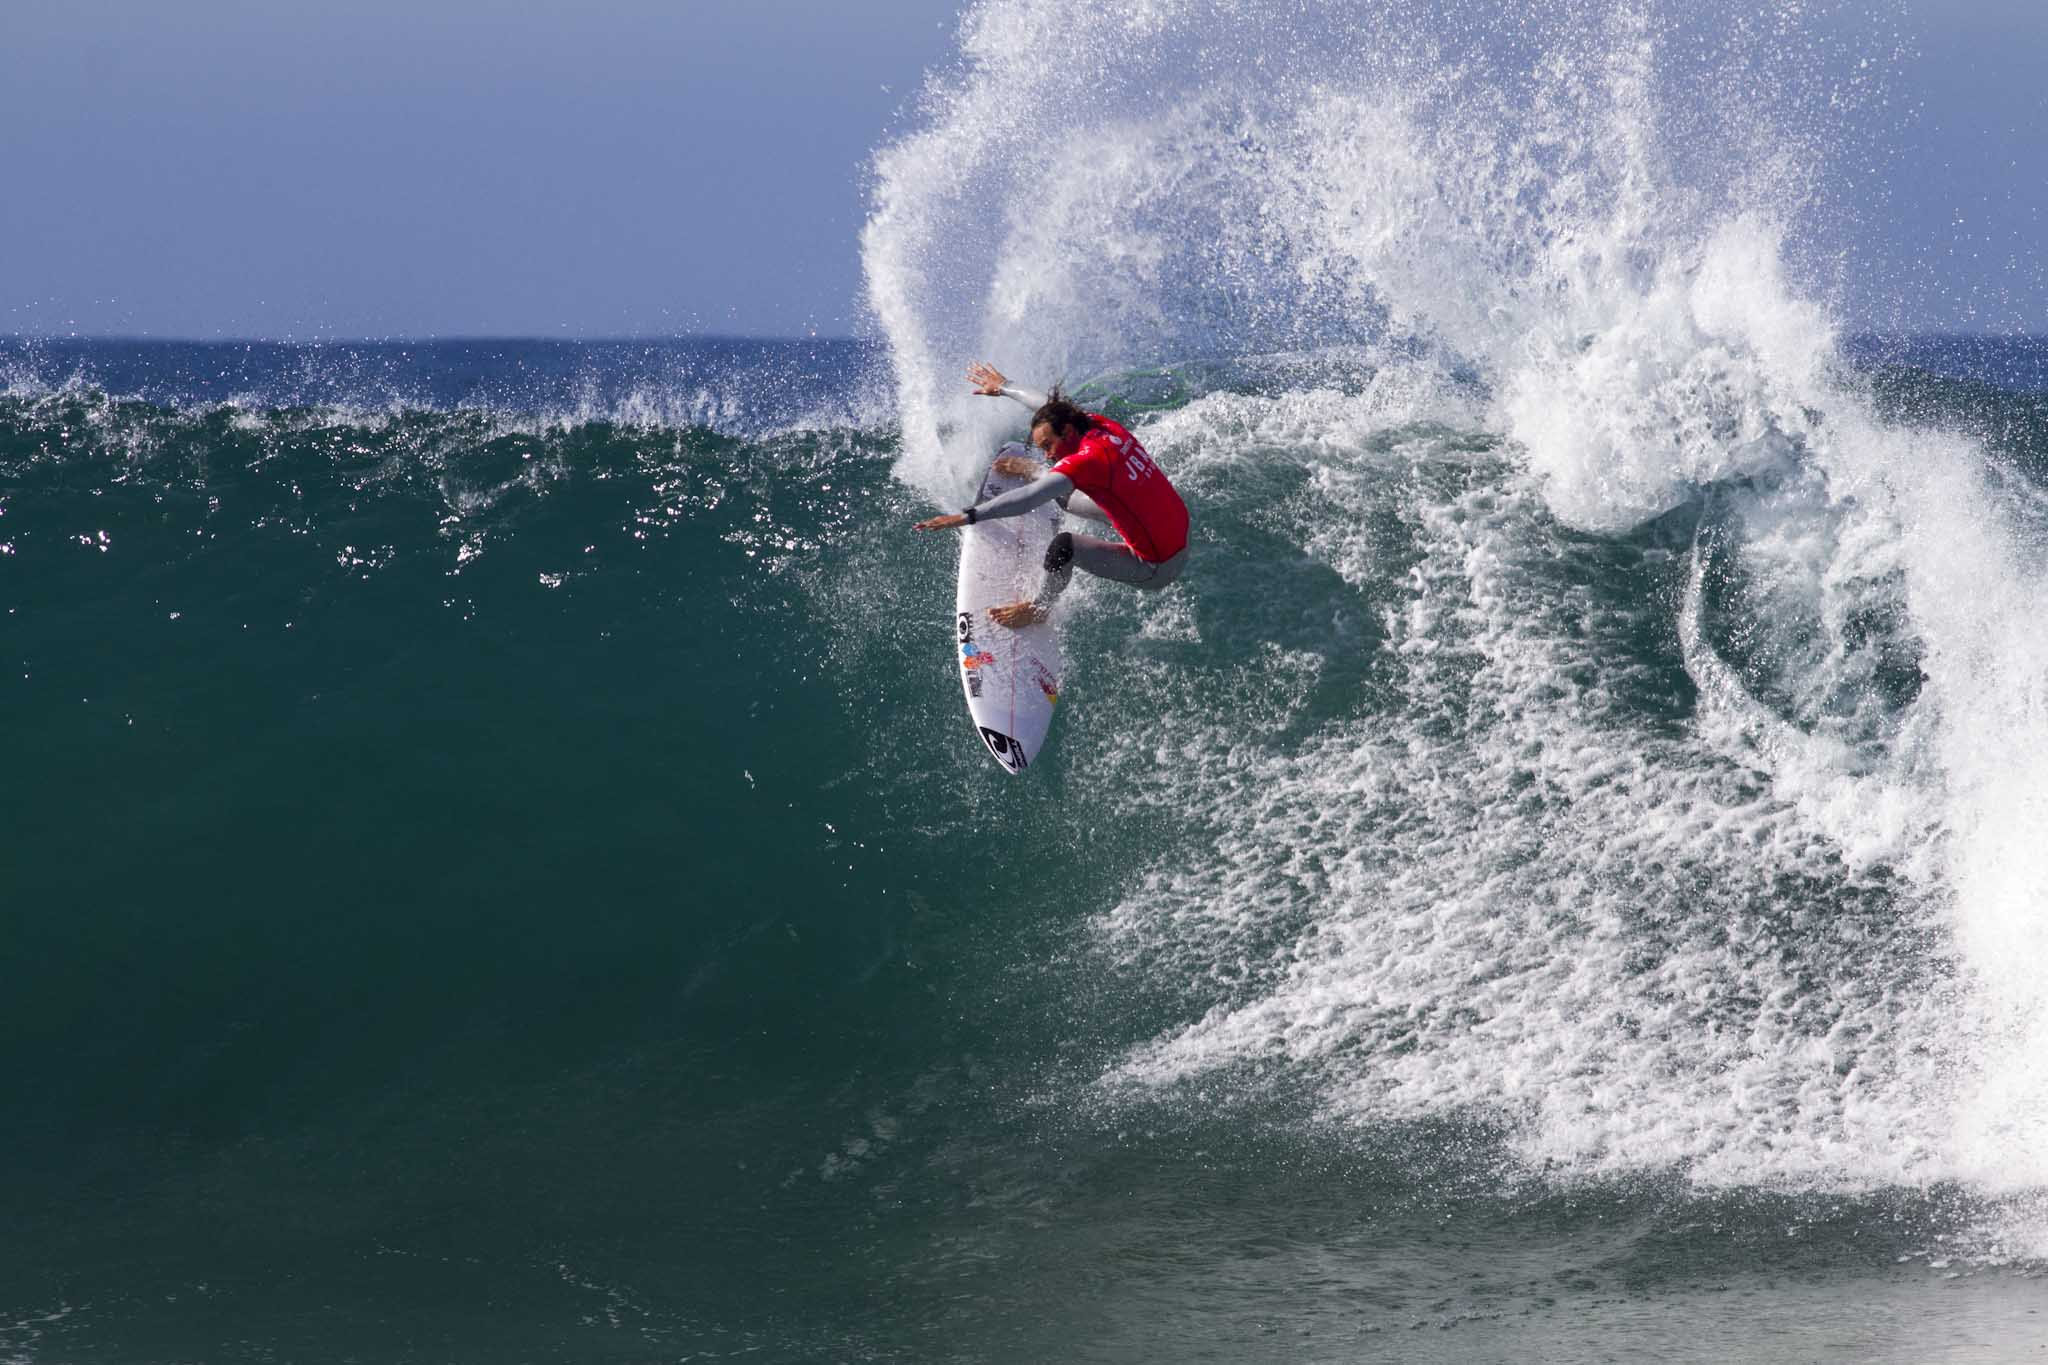 Jordy Smith surfing to a perfect 10 point ride